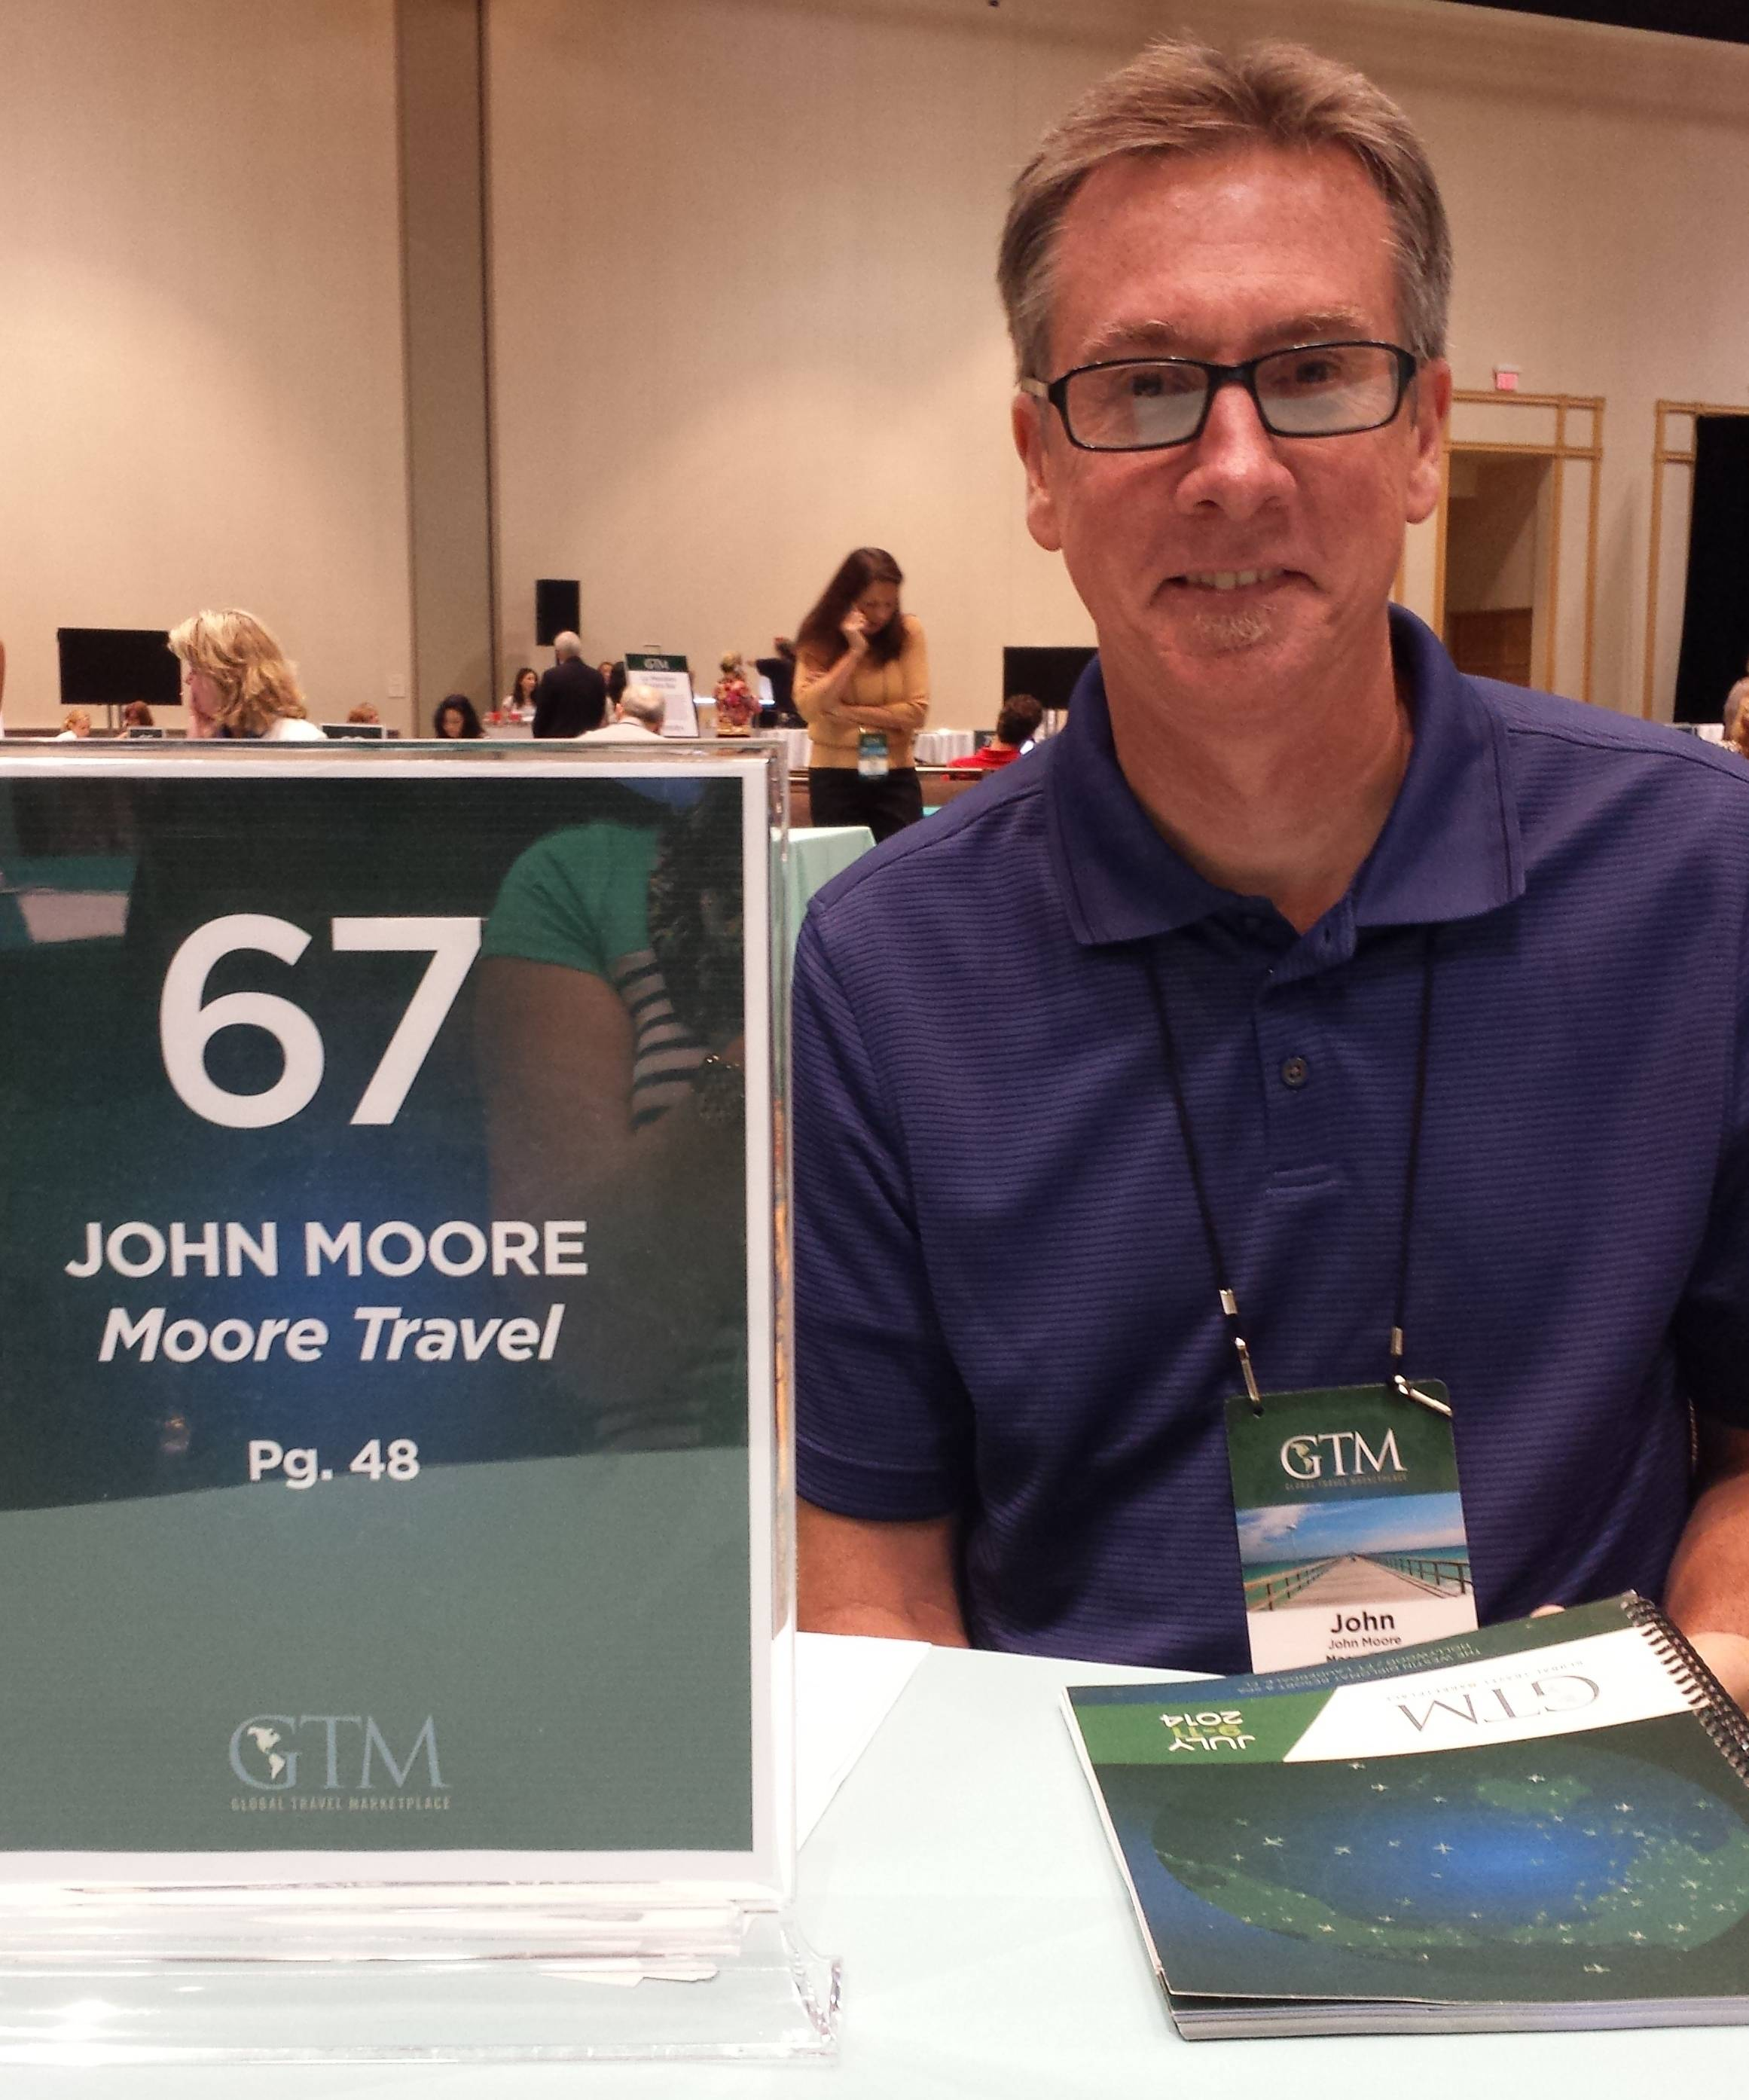 John Moore, Owner of Moore Travel in Bartlett conducts face to face business meetings at the elite Global Travel Marketplace held at Westin Diplomat Resort July 9-11, 2014Annette Moore